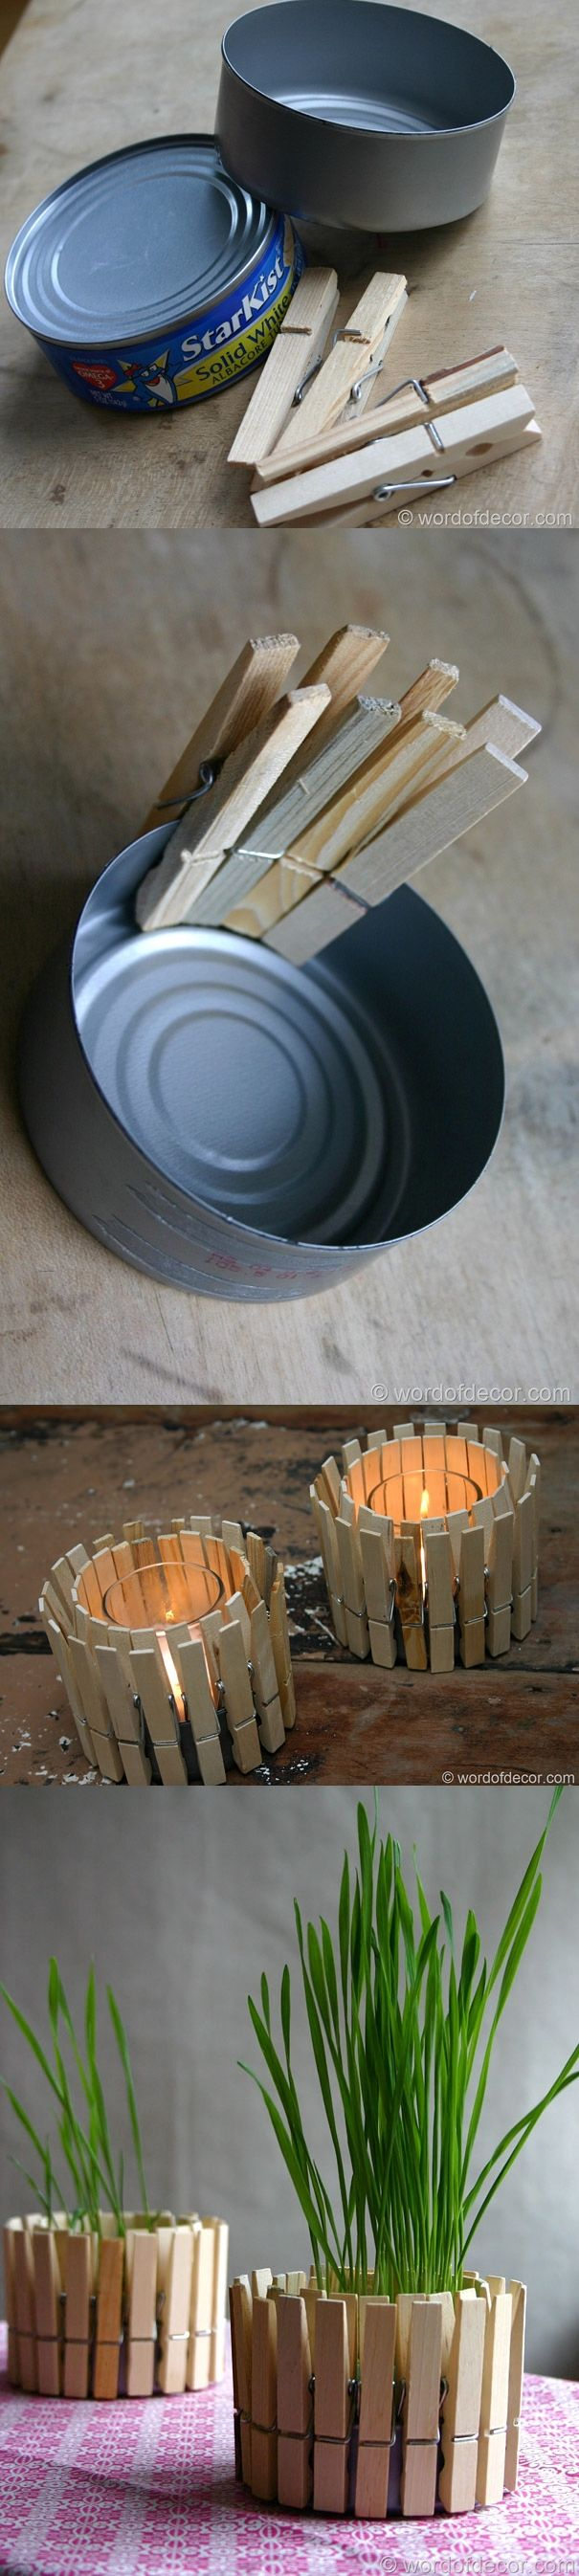 DIY Planter & Candle Holder